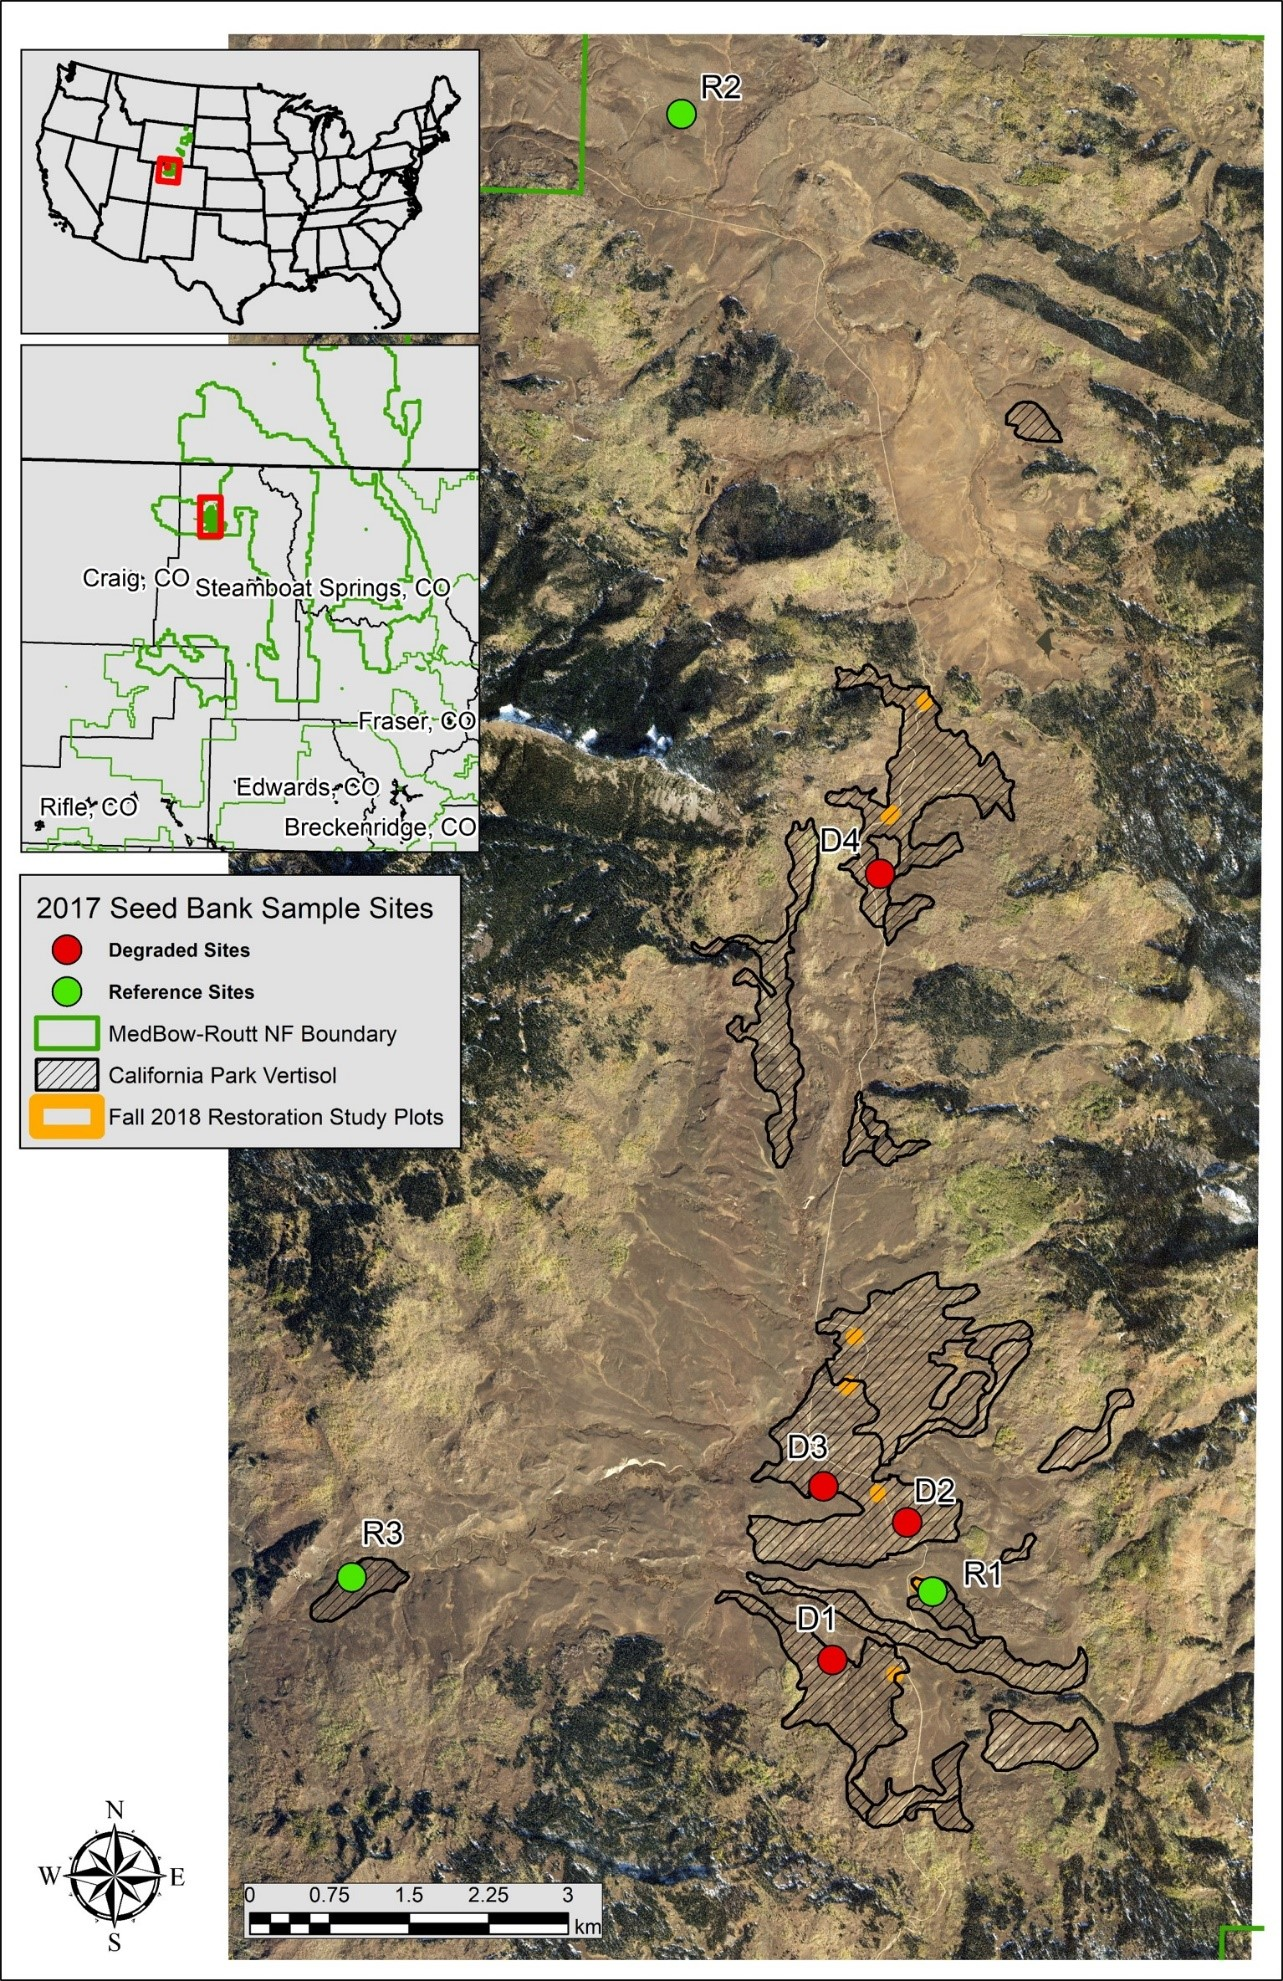 Map of California Park, Colorado, and location of sample sites and study plots.